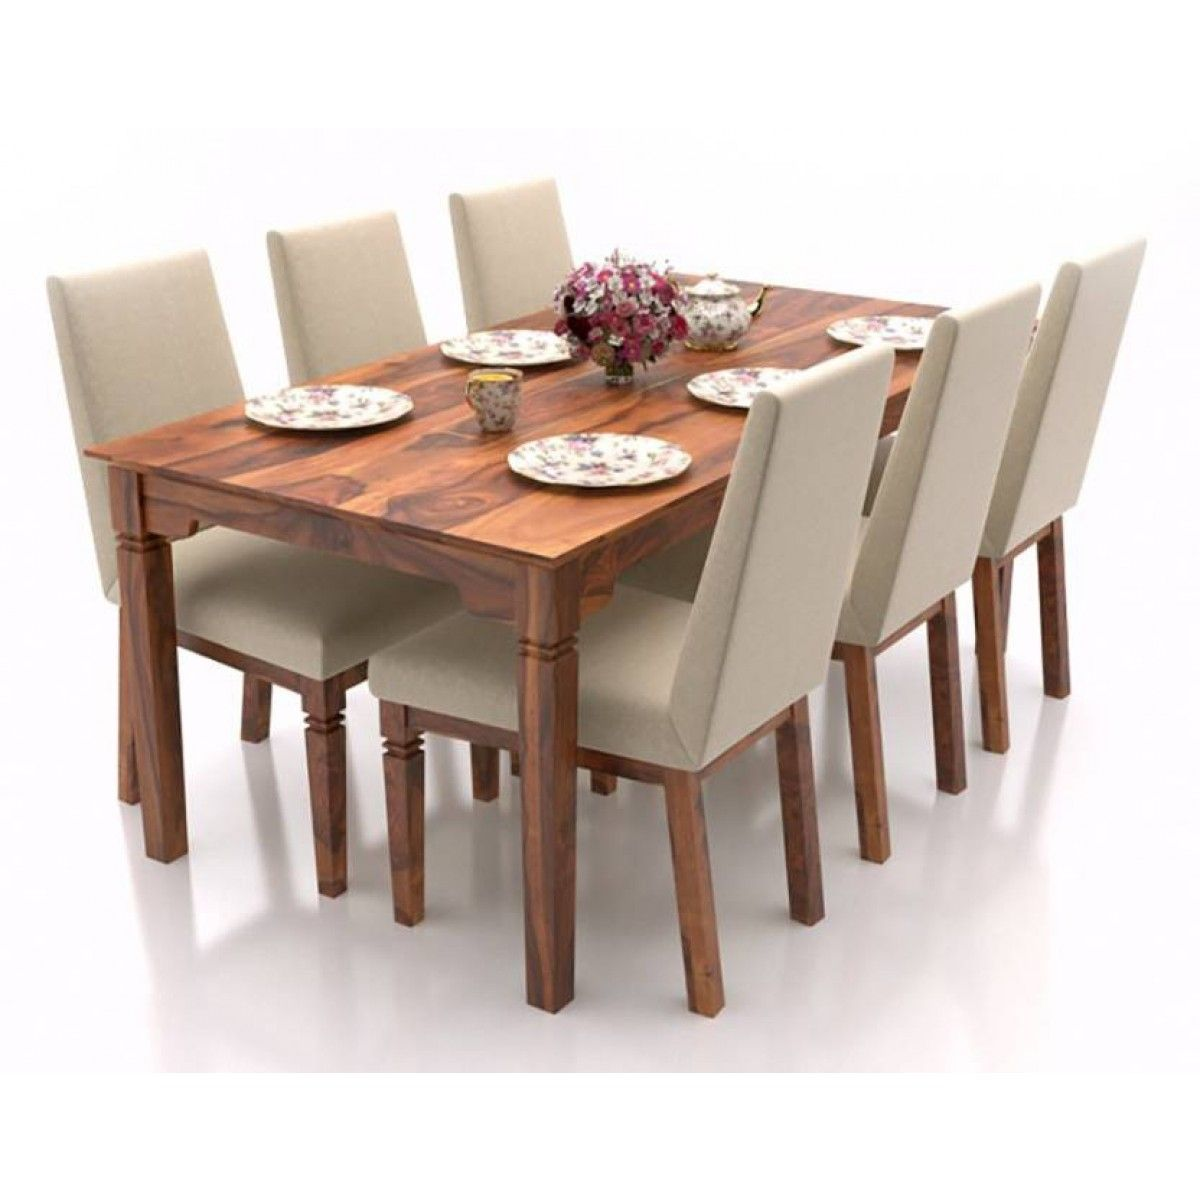 Malabar Xl With Brass Inlay 6 Seater Dining Table Set 6 Seater